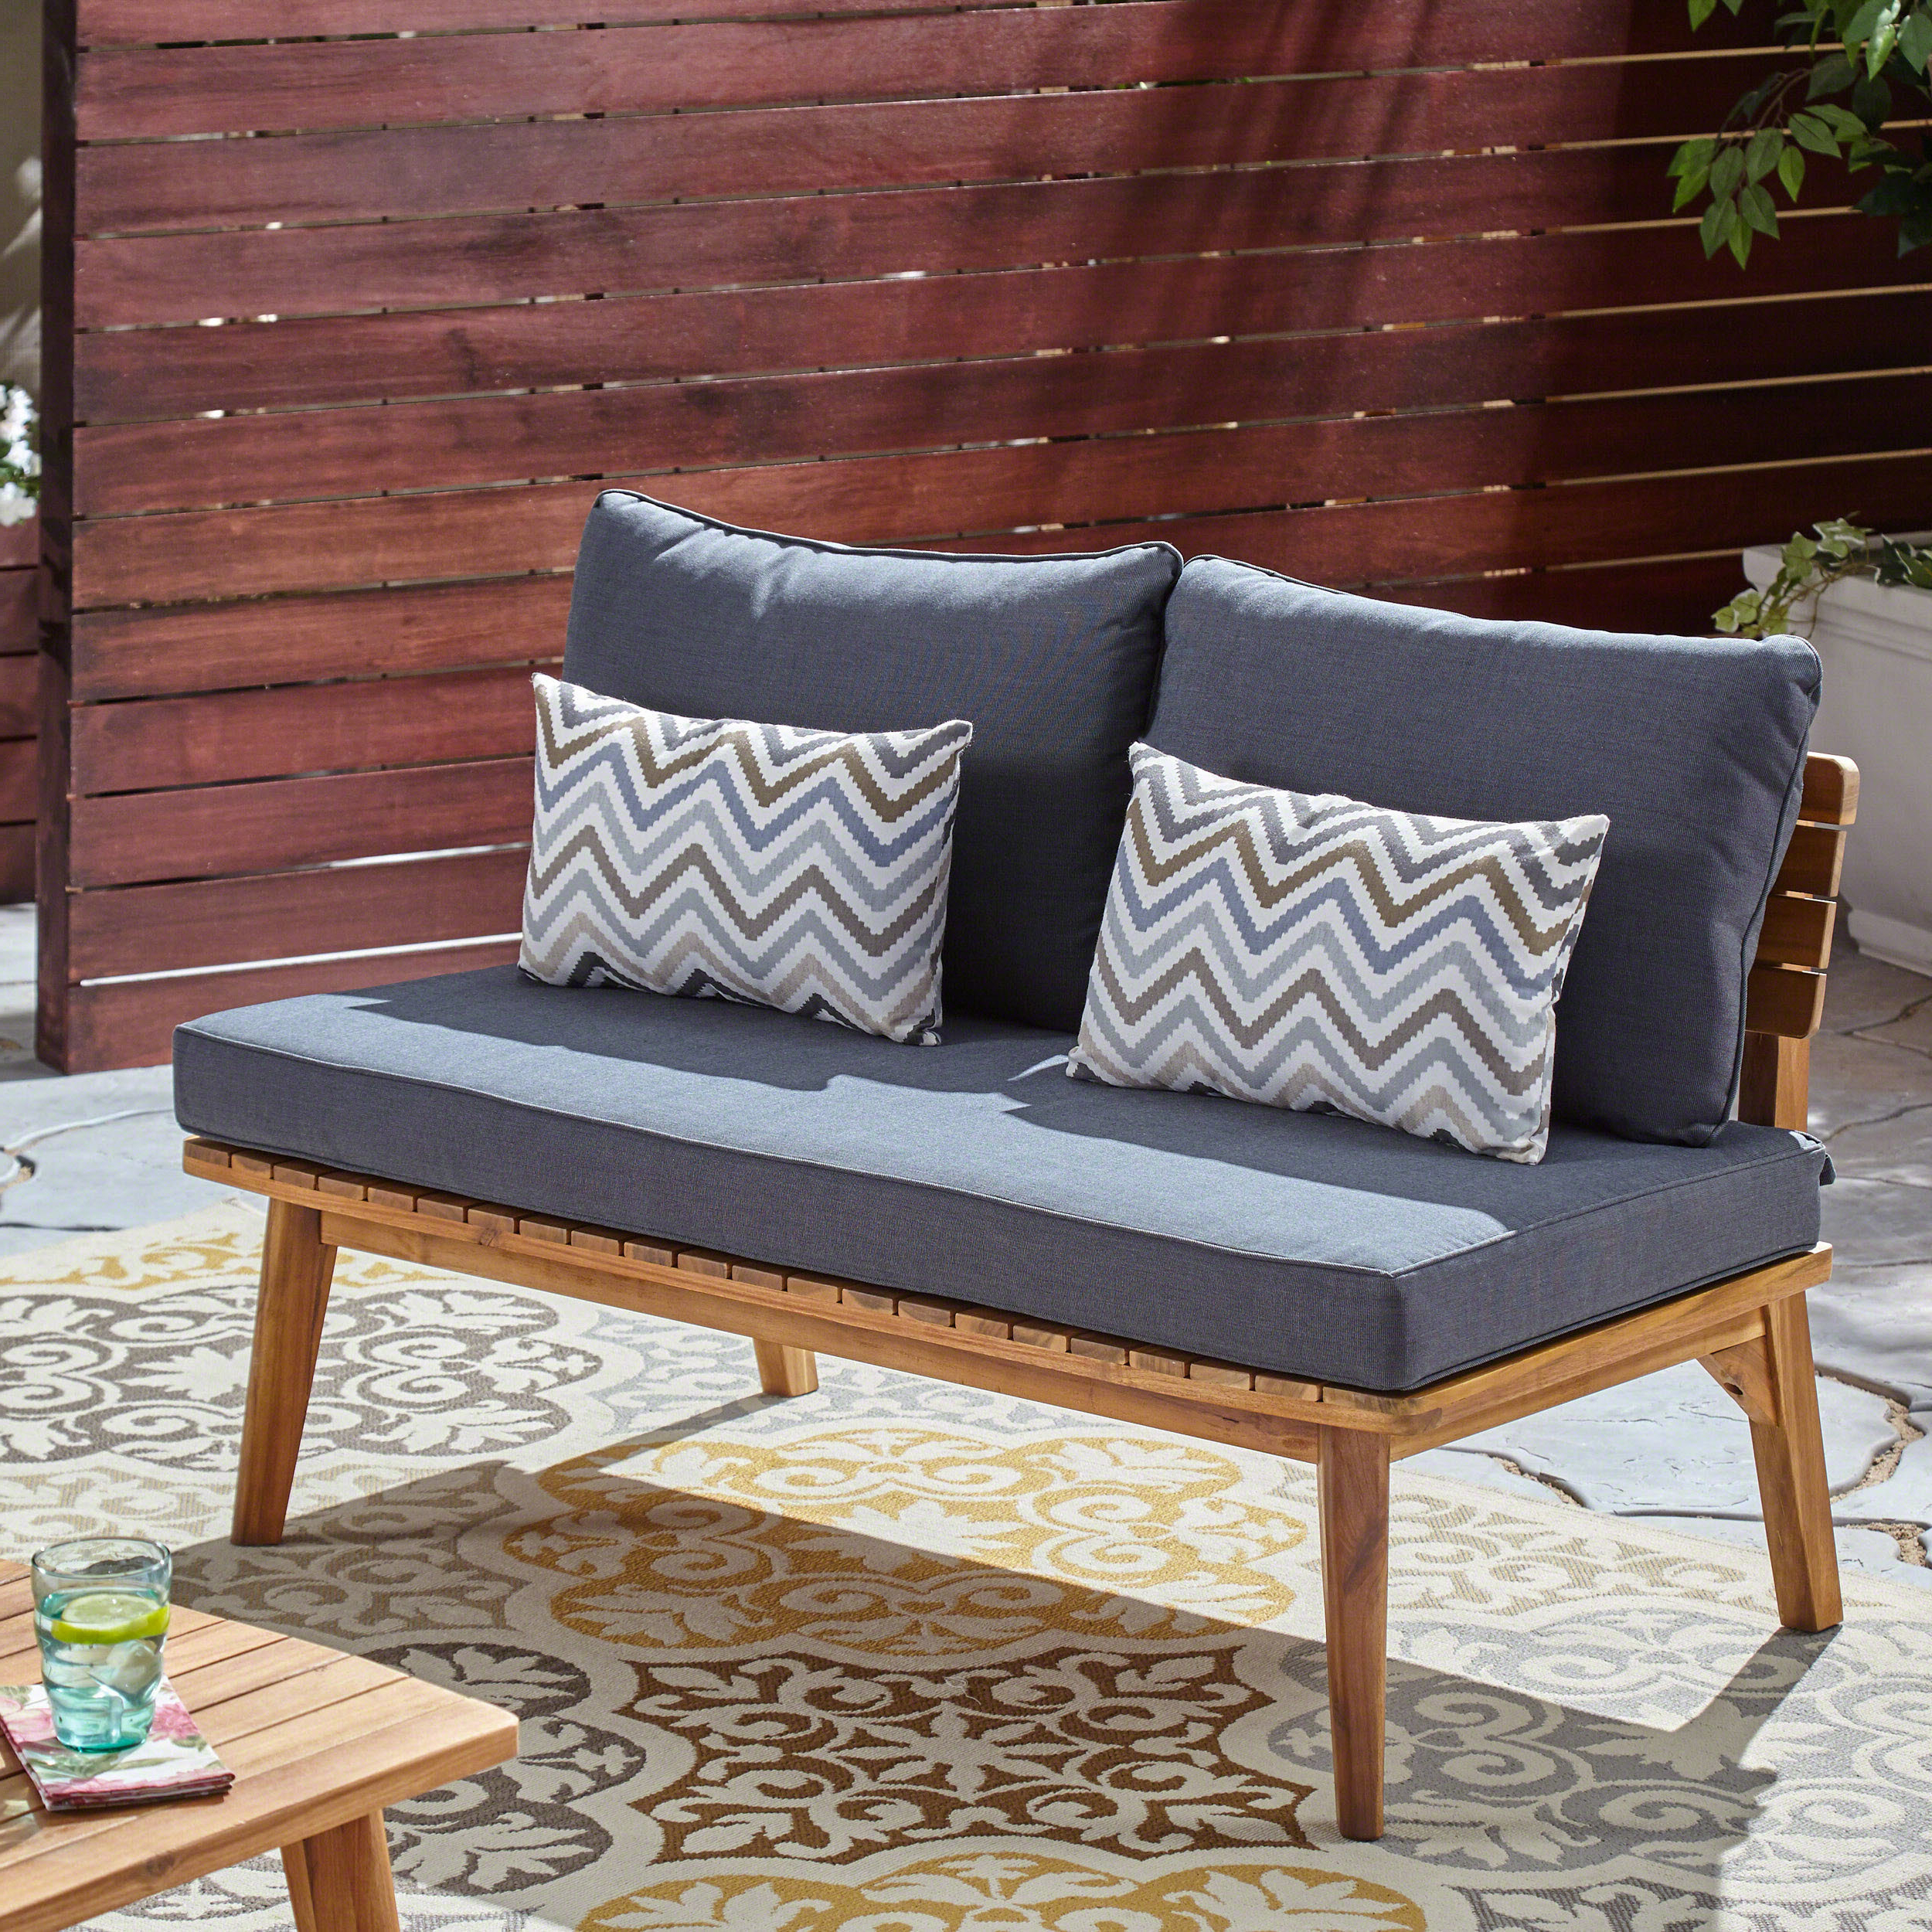 Most Recent Eller Loveseat With Cushions Throughout Lyall Loveseats With Cushion (View 12 of 20)